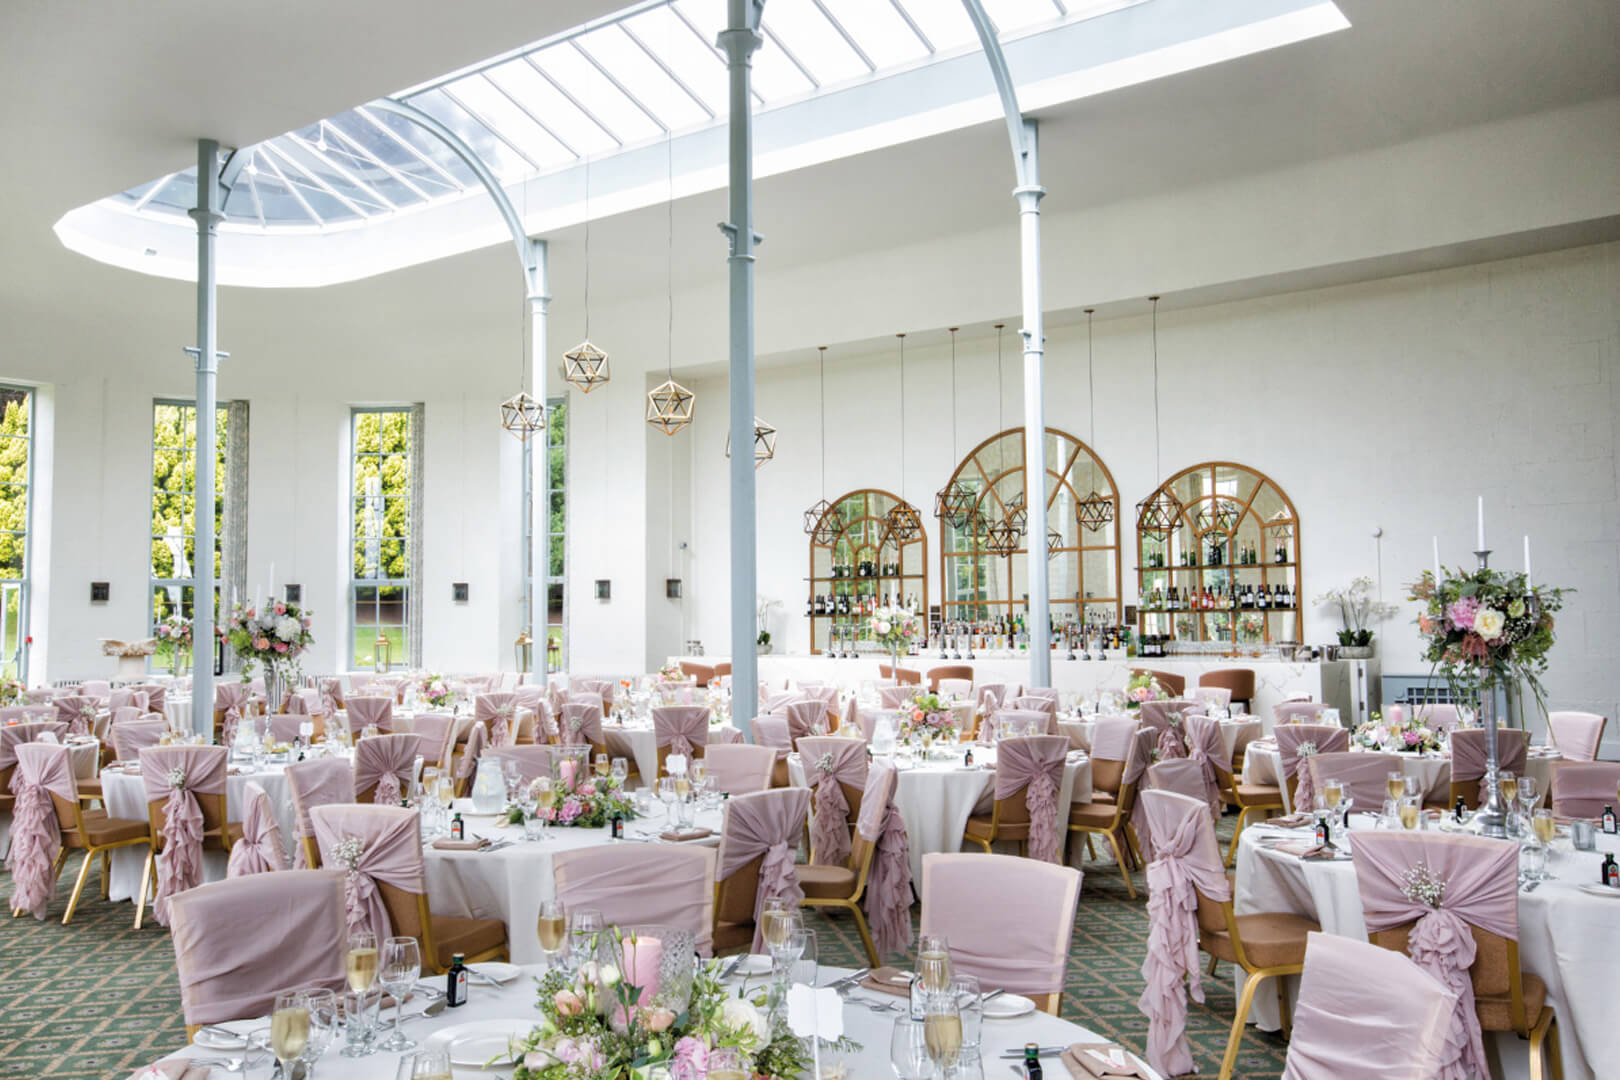 <p>Once filled with the scent of orange and lemon trees, the Conservatory now provides a light and contemporary space with pale green features, reflective of its history.</p>